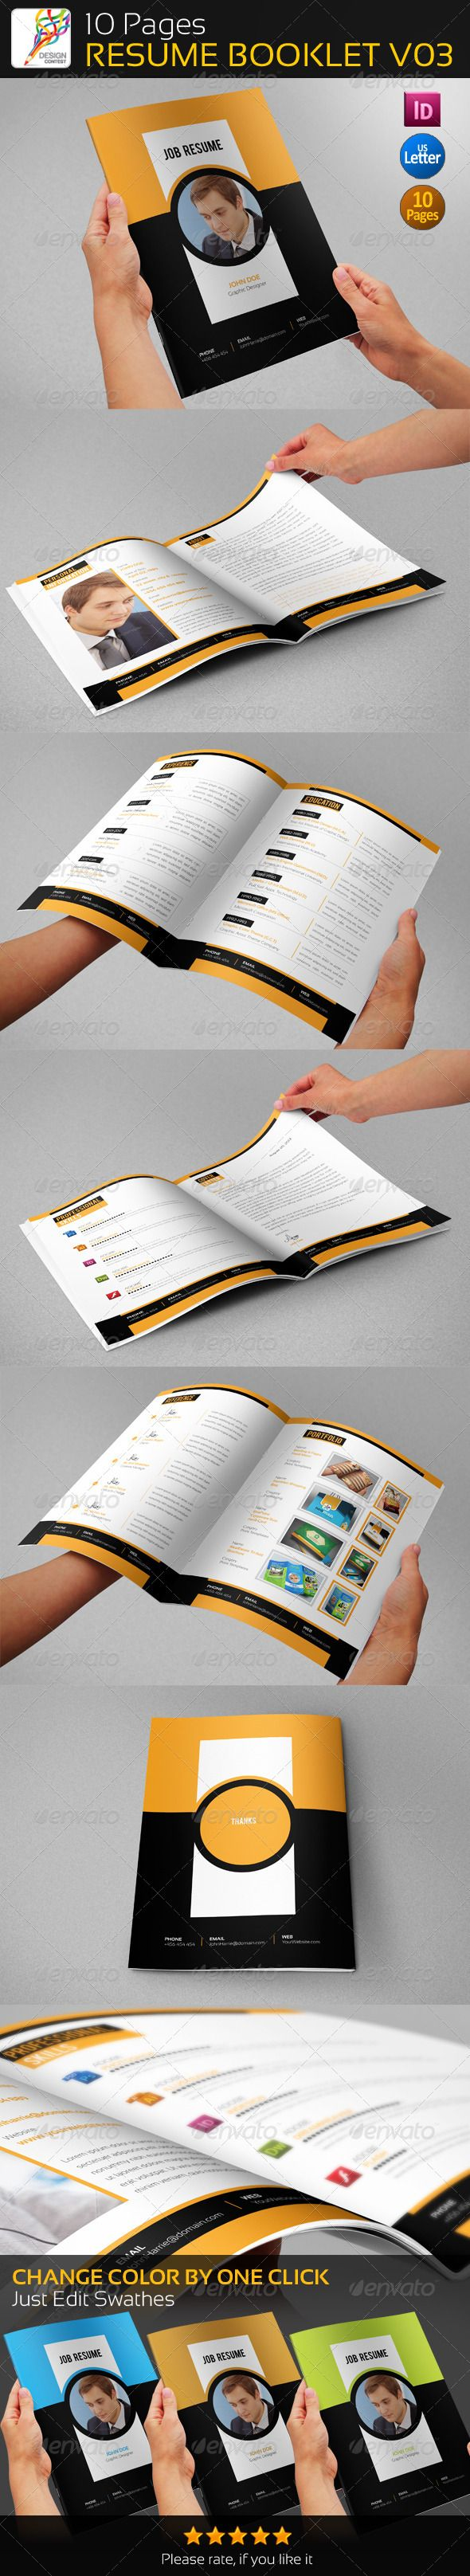 10 Pages Professional Resume Booklet V03 19